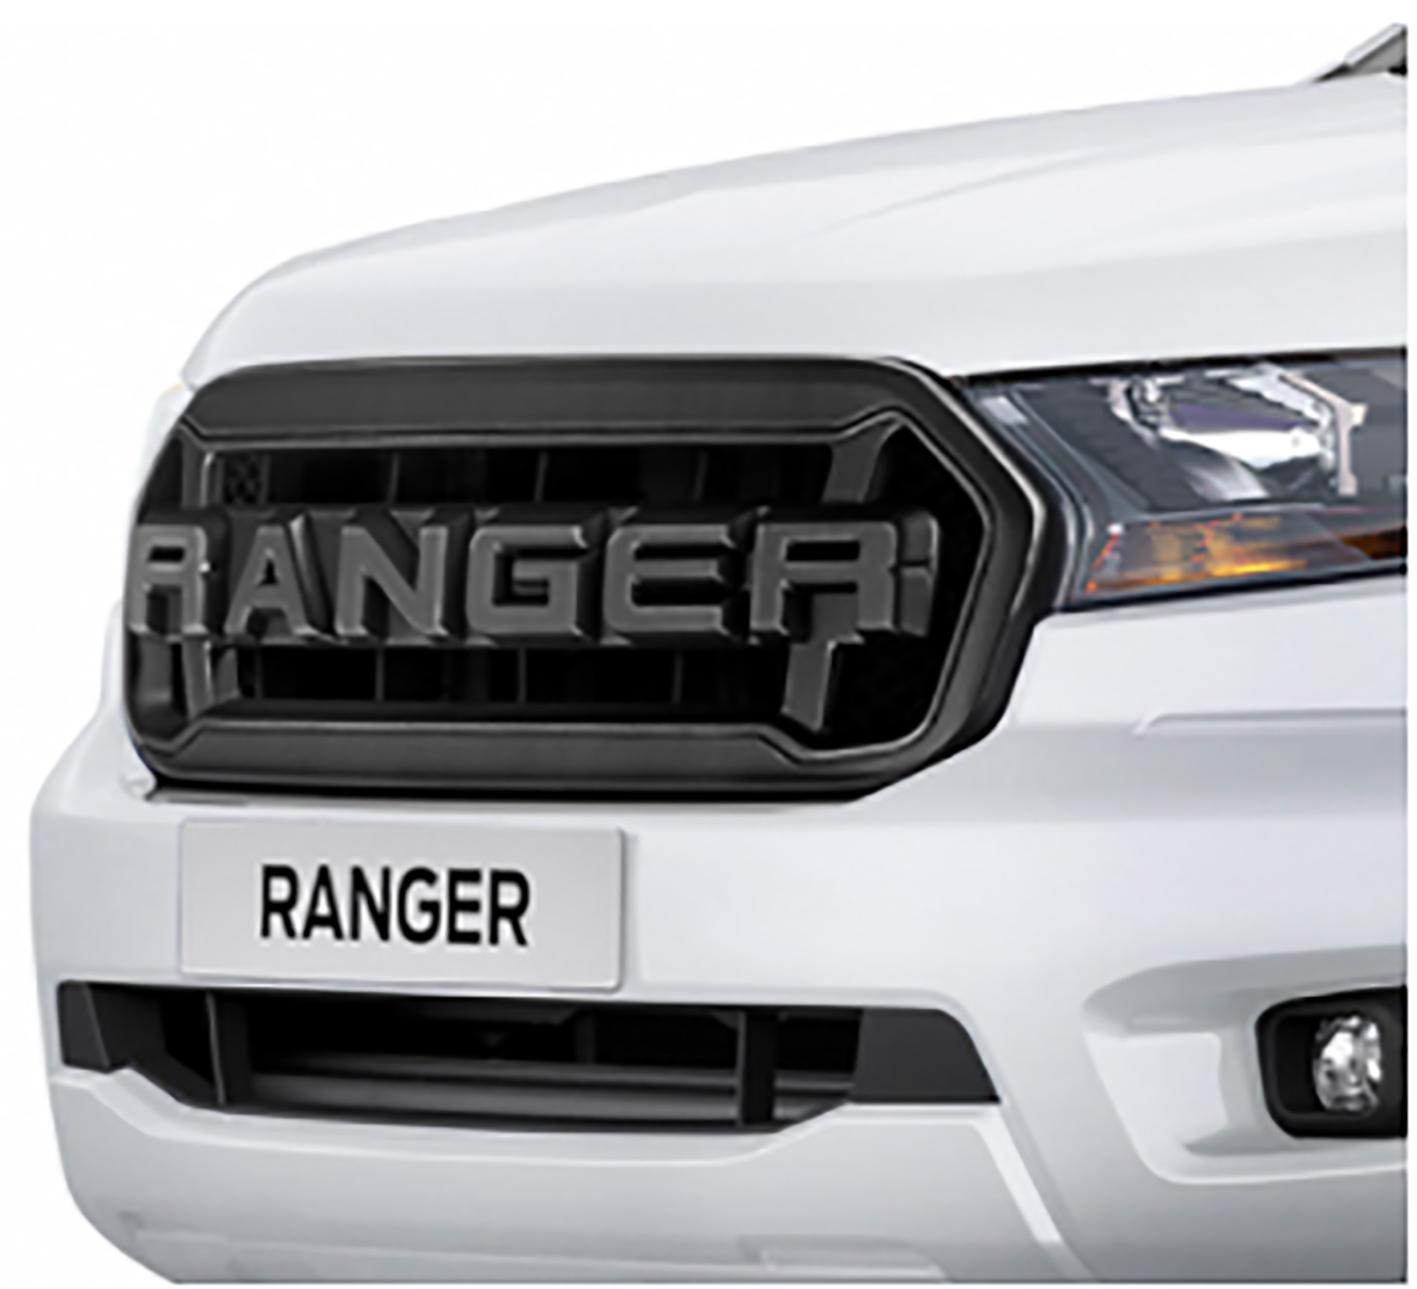 Ford-Ranger-Sports-Off-Road-Accessory-Kit-Exterior-Brazil-002-RANGER-script-grille.jpg